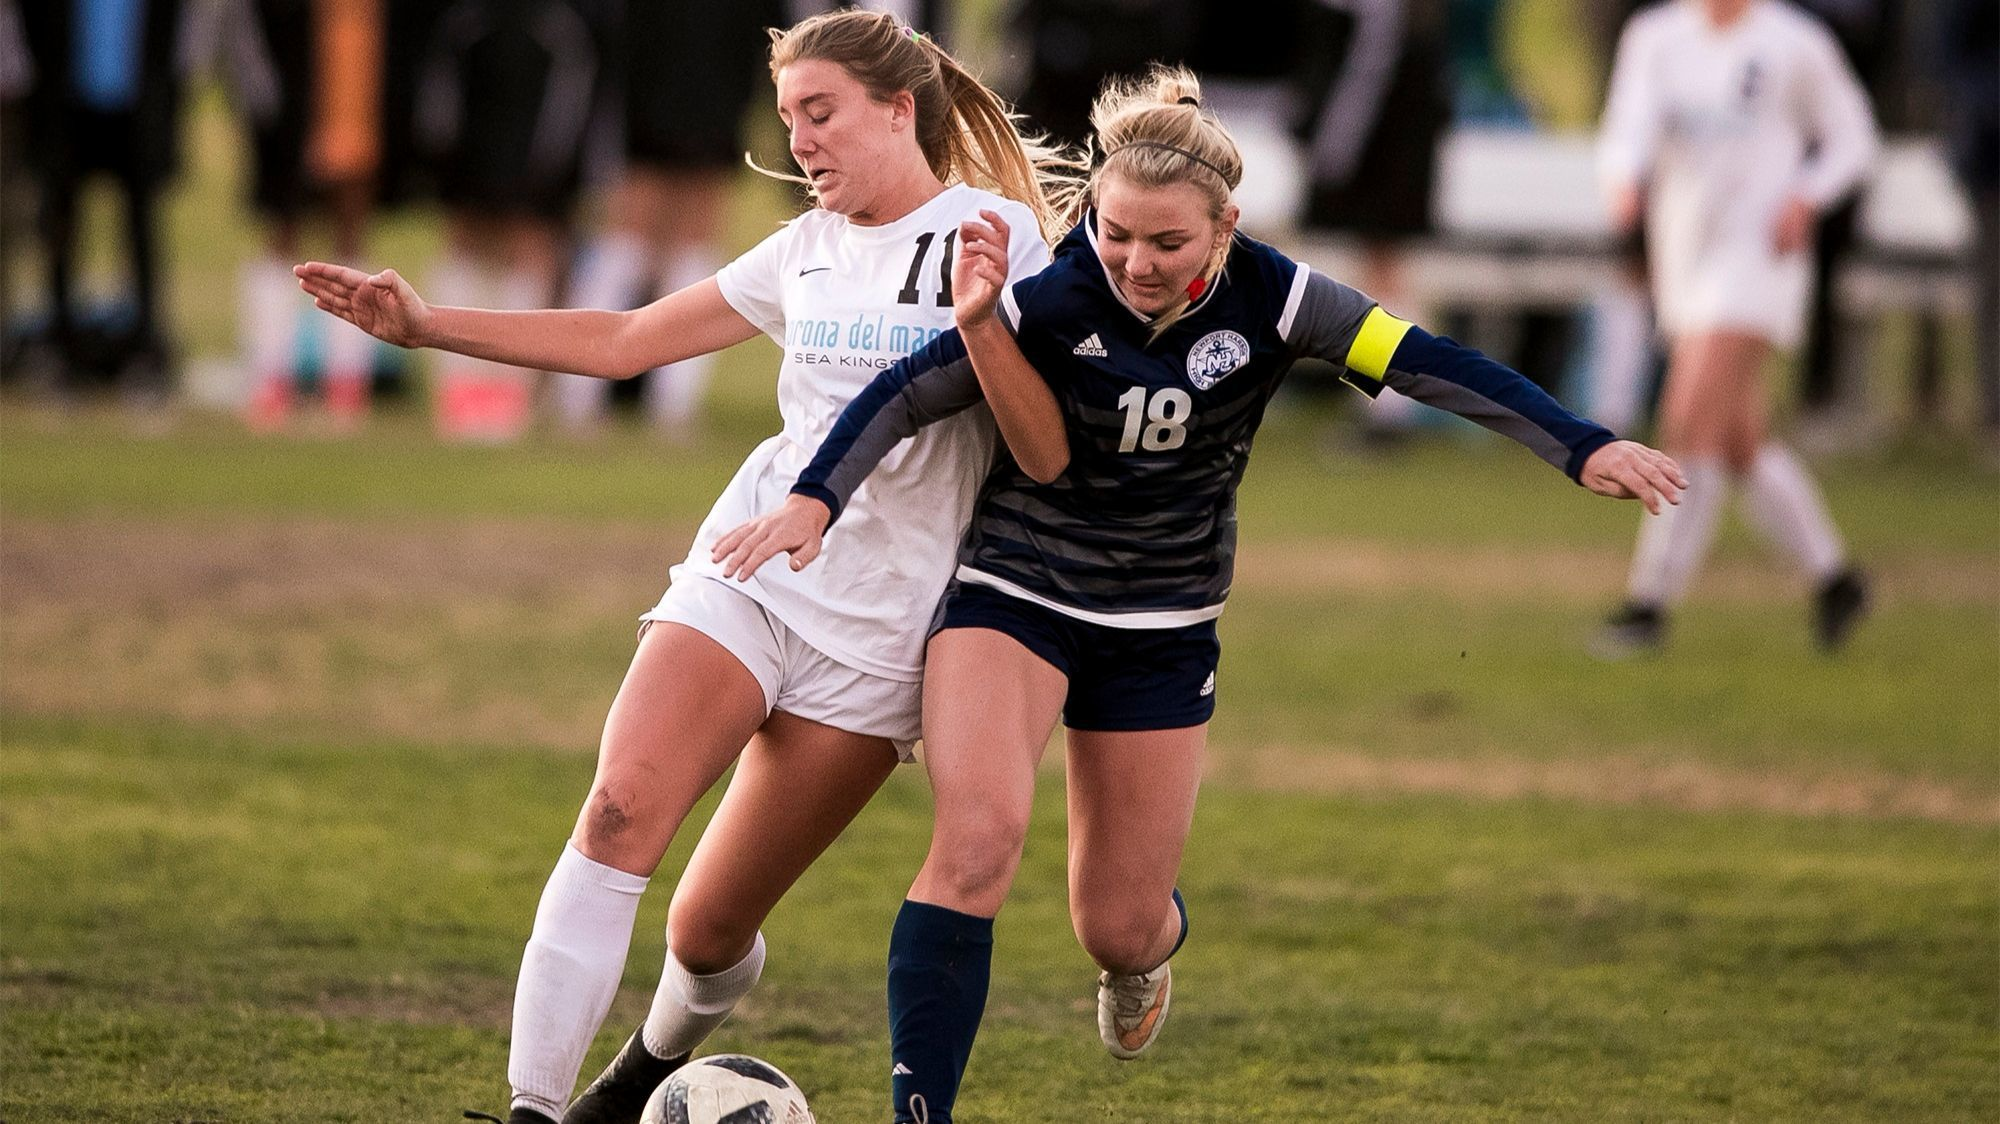 Corona del Mar boys' soccer player Katharine Caston and Newport Harbor's Scout Farmer